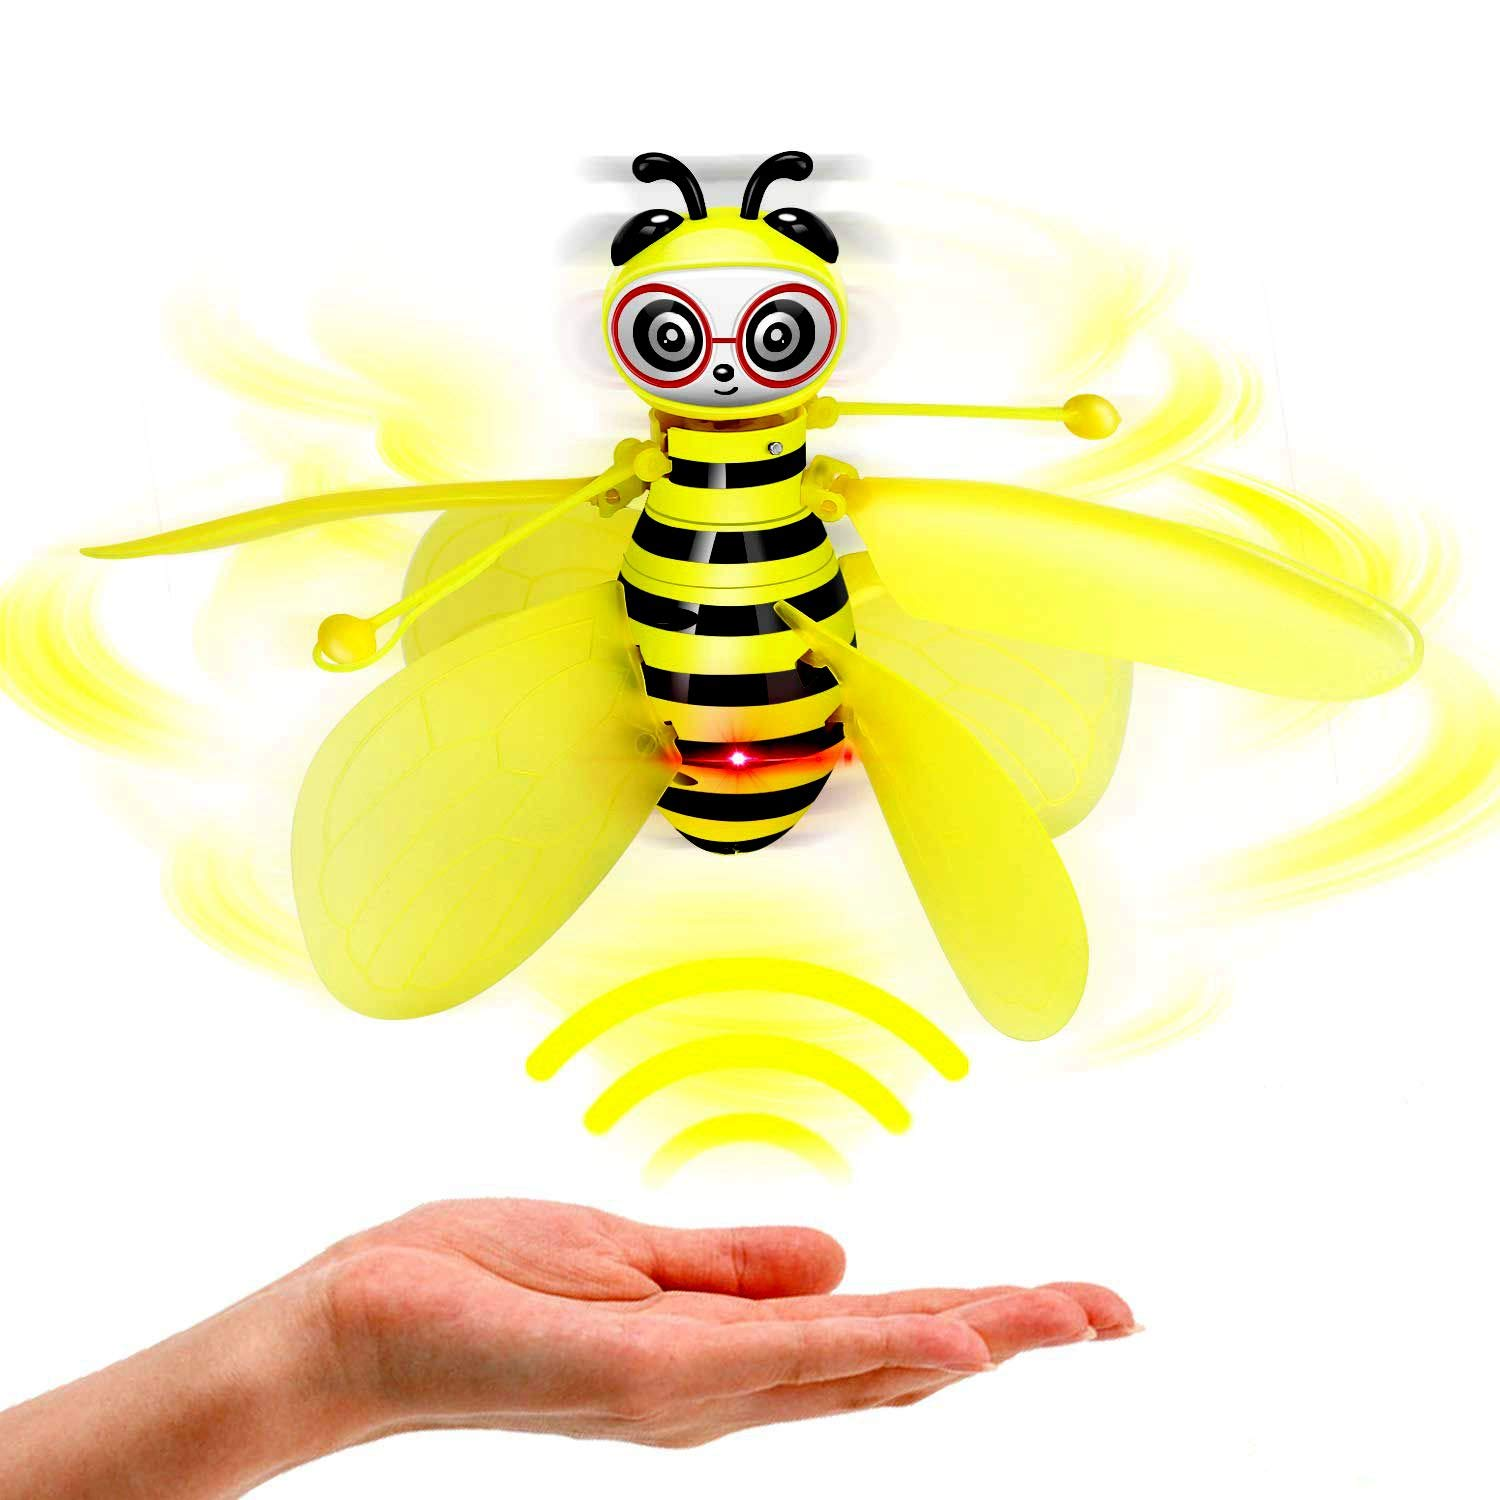 FLQ123 Flying Toys, bee Gravity Sensing Aircraft, Hanging Helicopter Toys, Hand-Controlled bee Helicopters, Birthday Holiday, 4 Years Old Children, Men and Women app